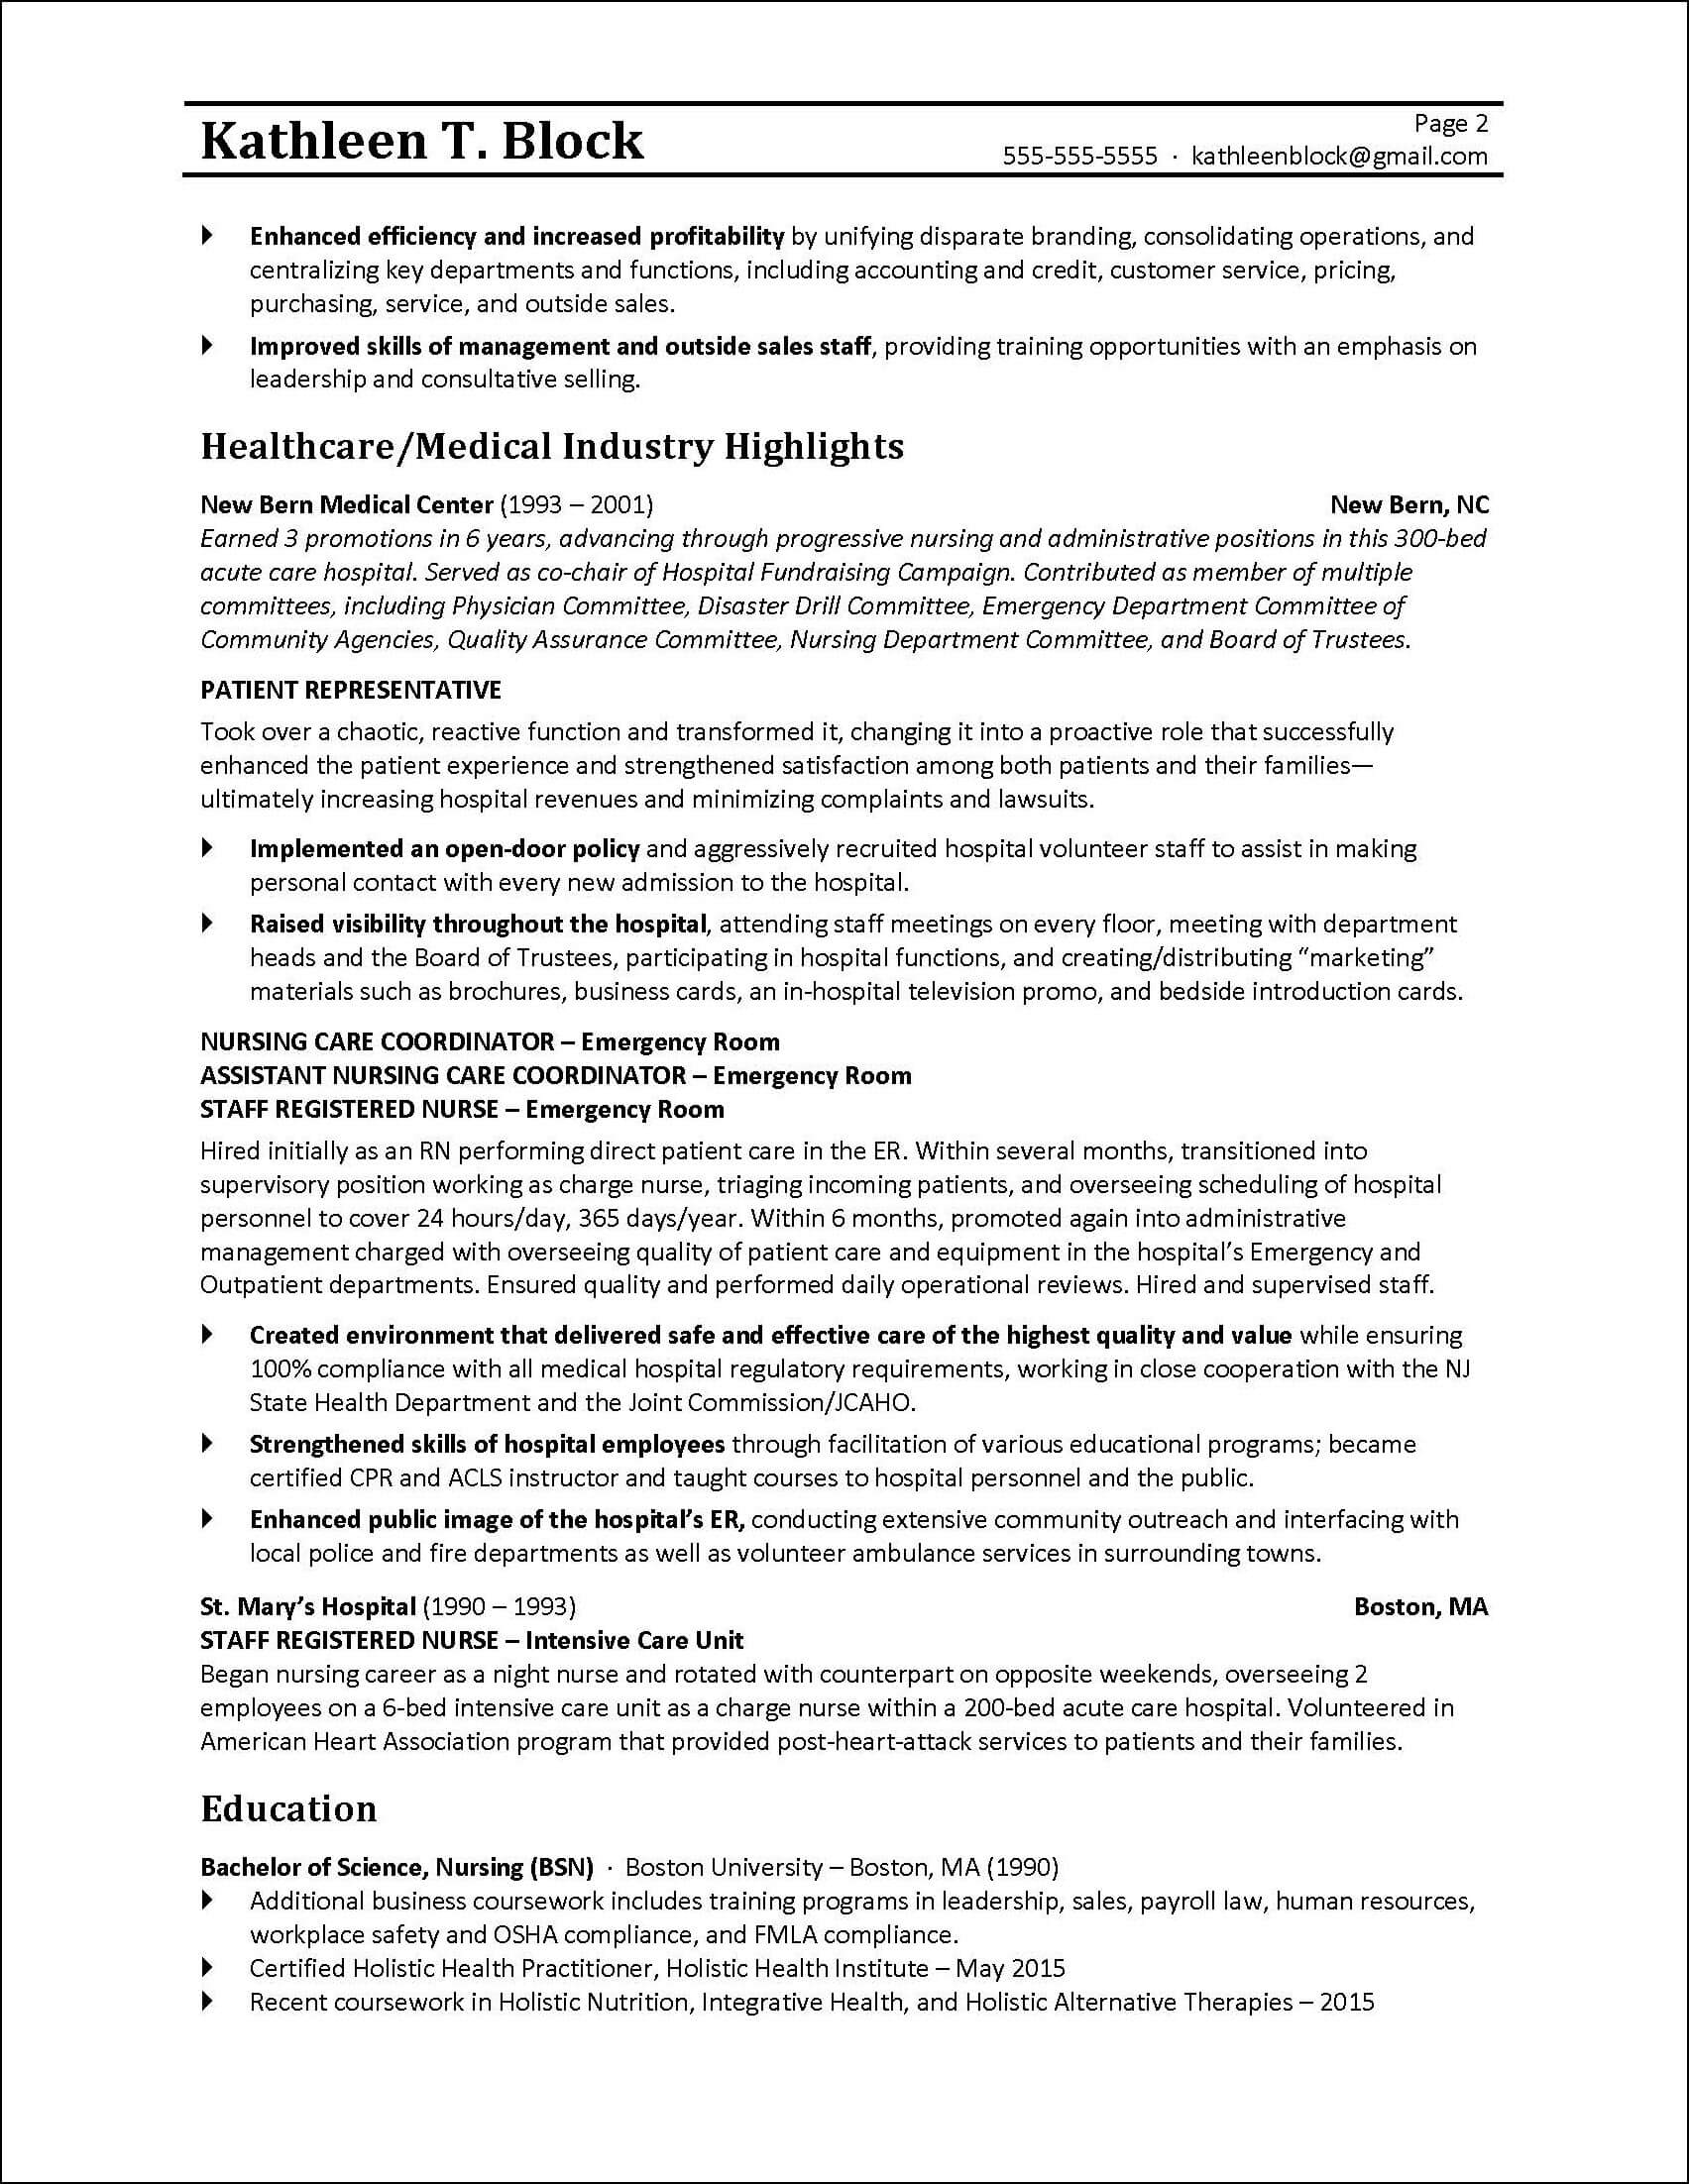 Management Resume Sample Healthcare Industry